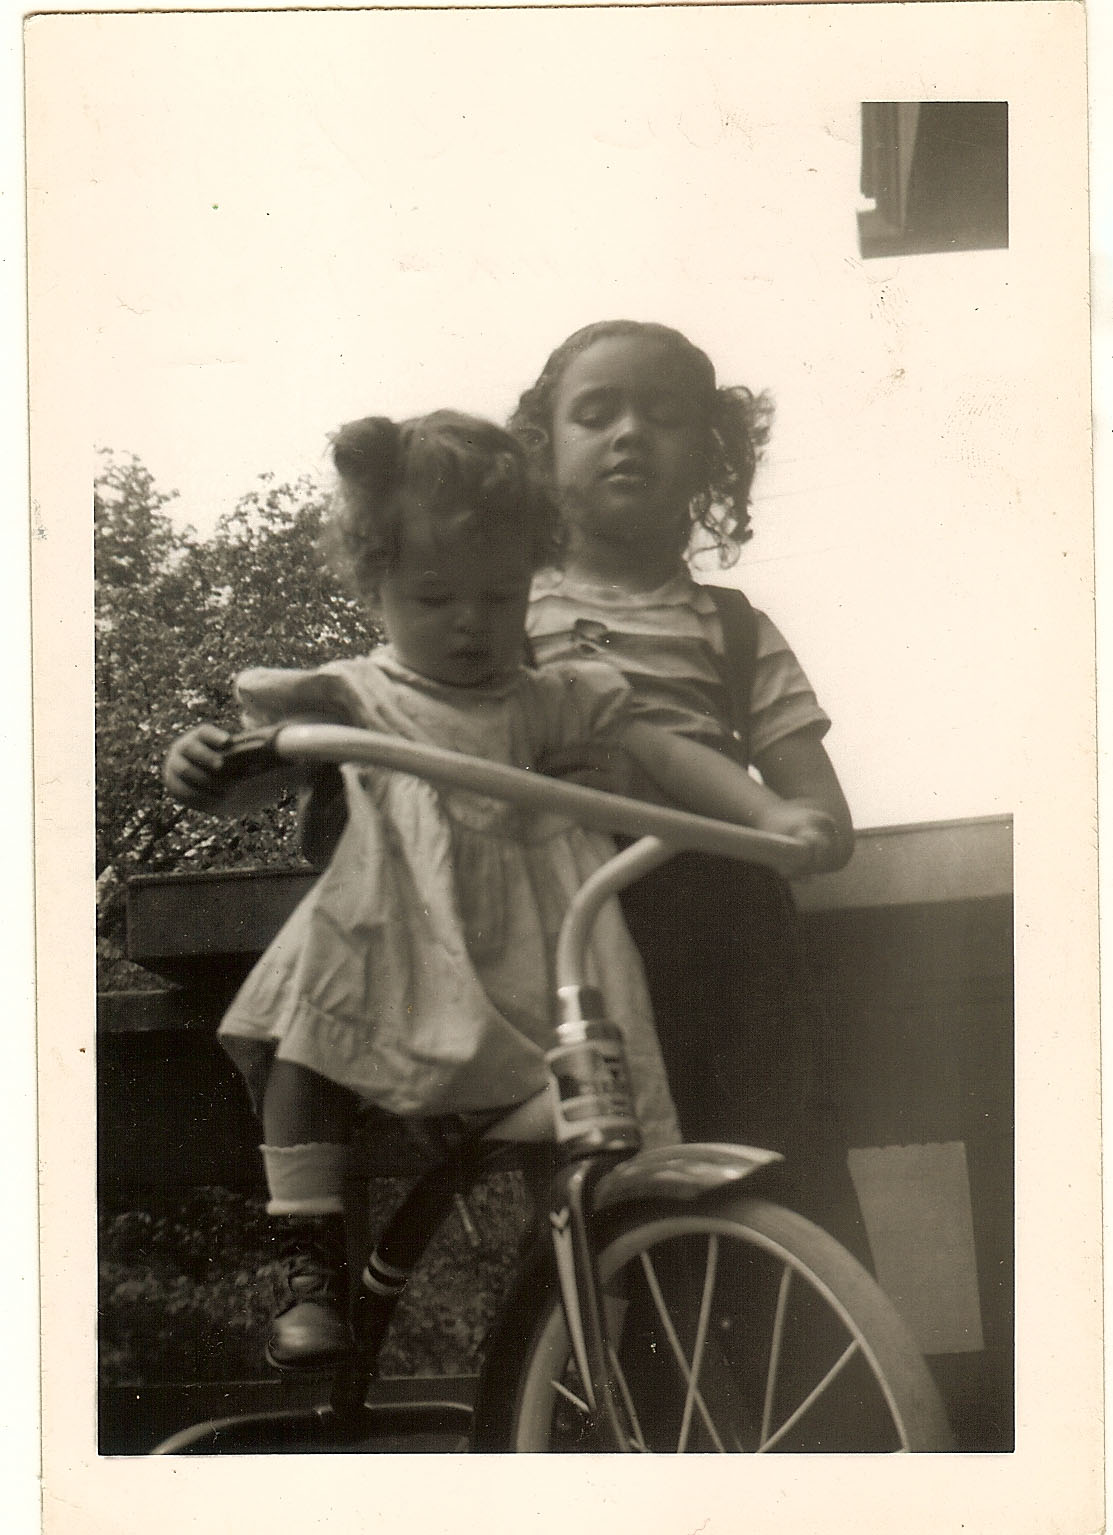 My cousin Barbara on a bike around 1949. Her older sister Dee Dee is holding her up.